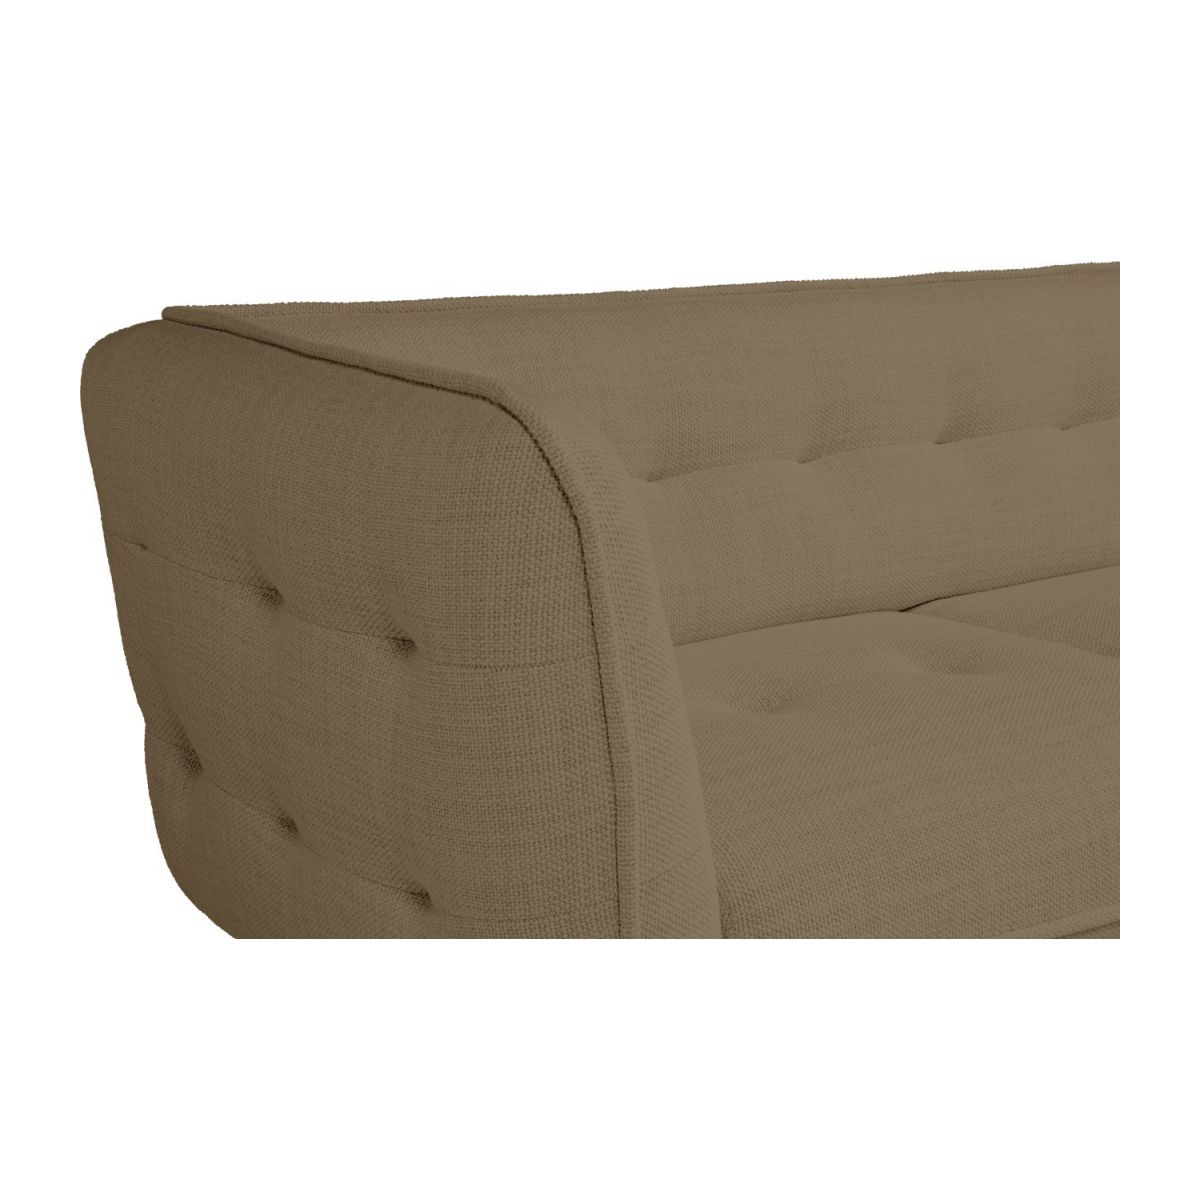 2 seater sofa in Fasoli fabric, jatoba brown and dark legs n°6